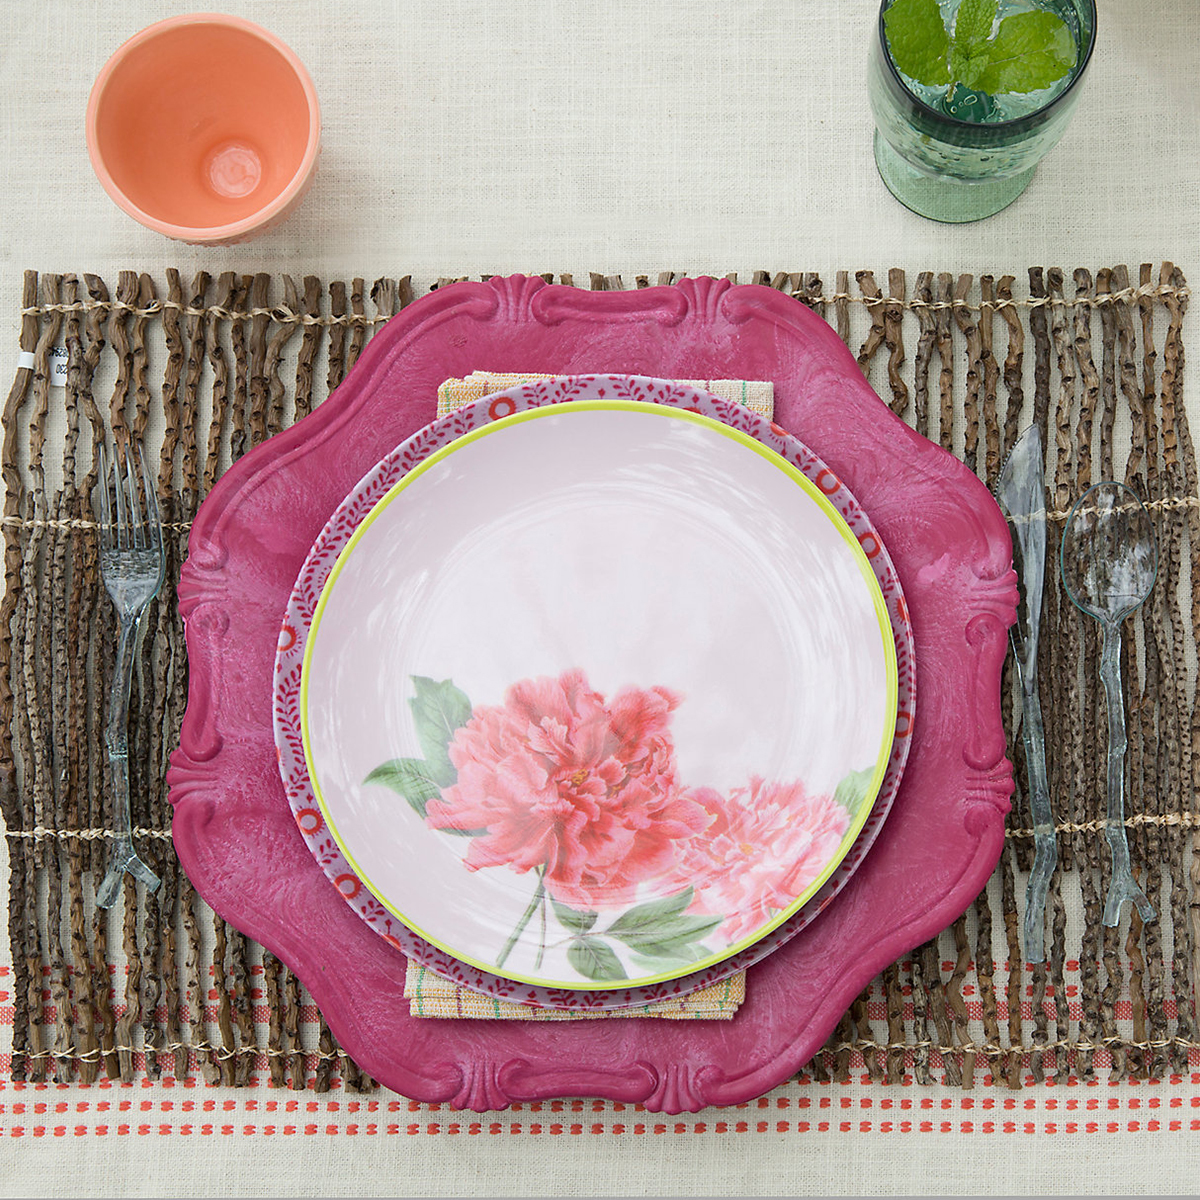 Rustic distressed wood twig placemat that can be rolled up for storage. photo